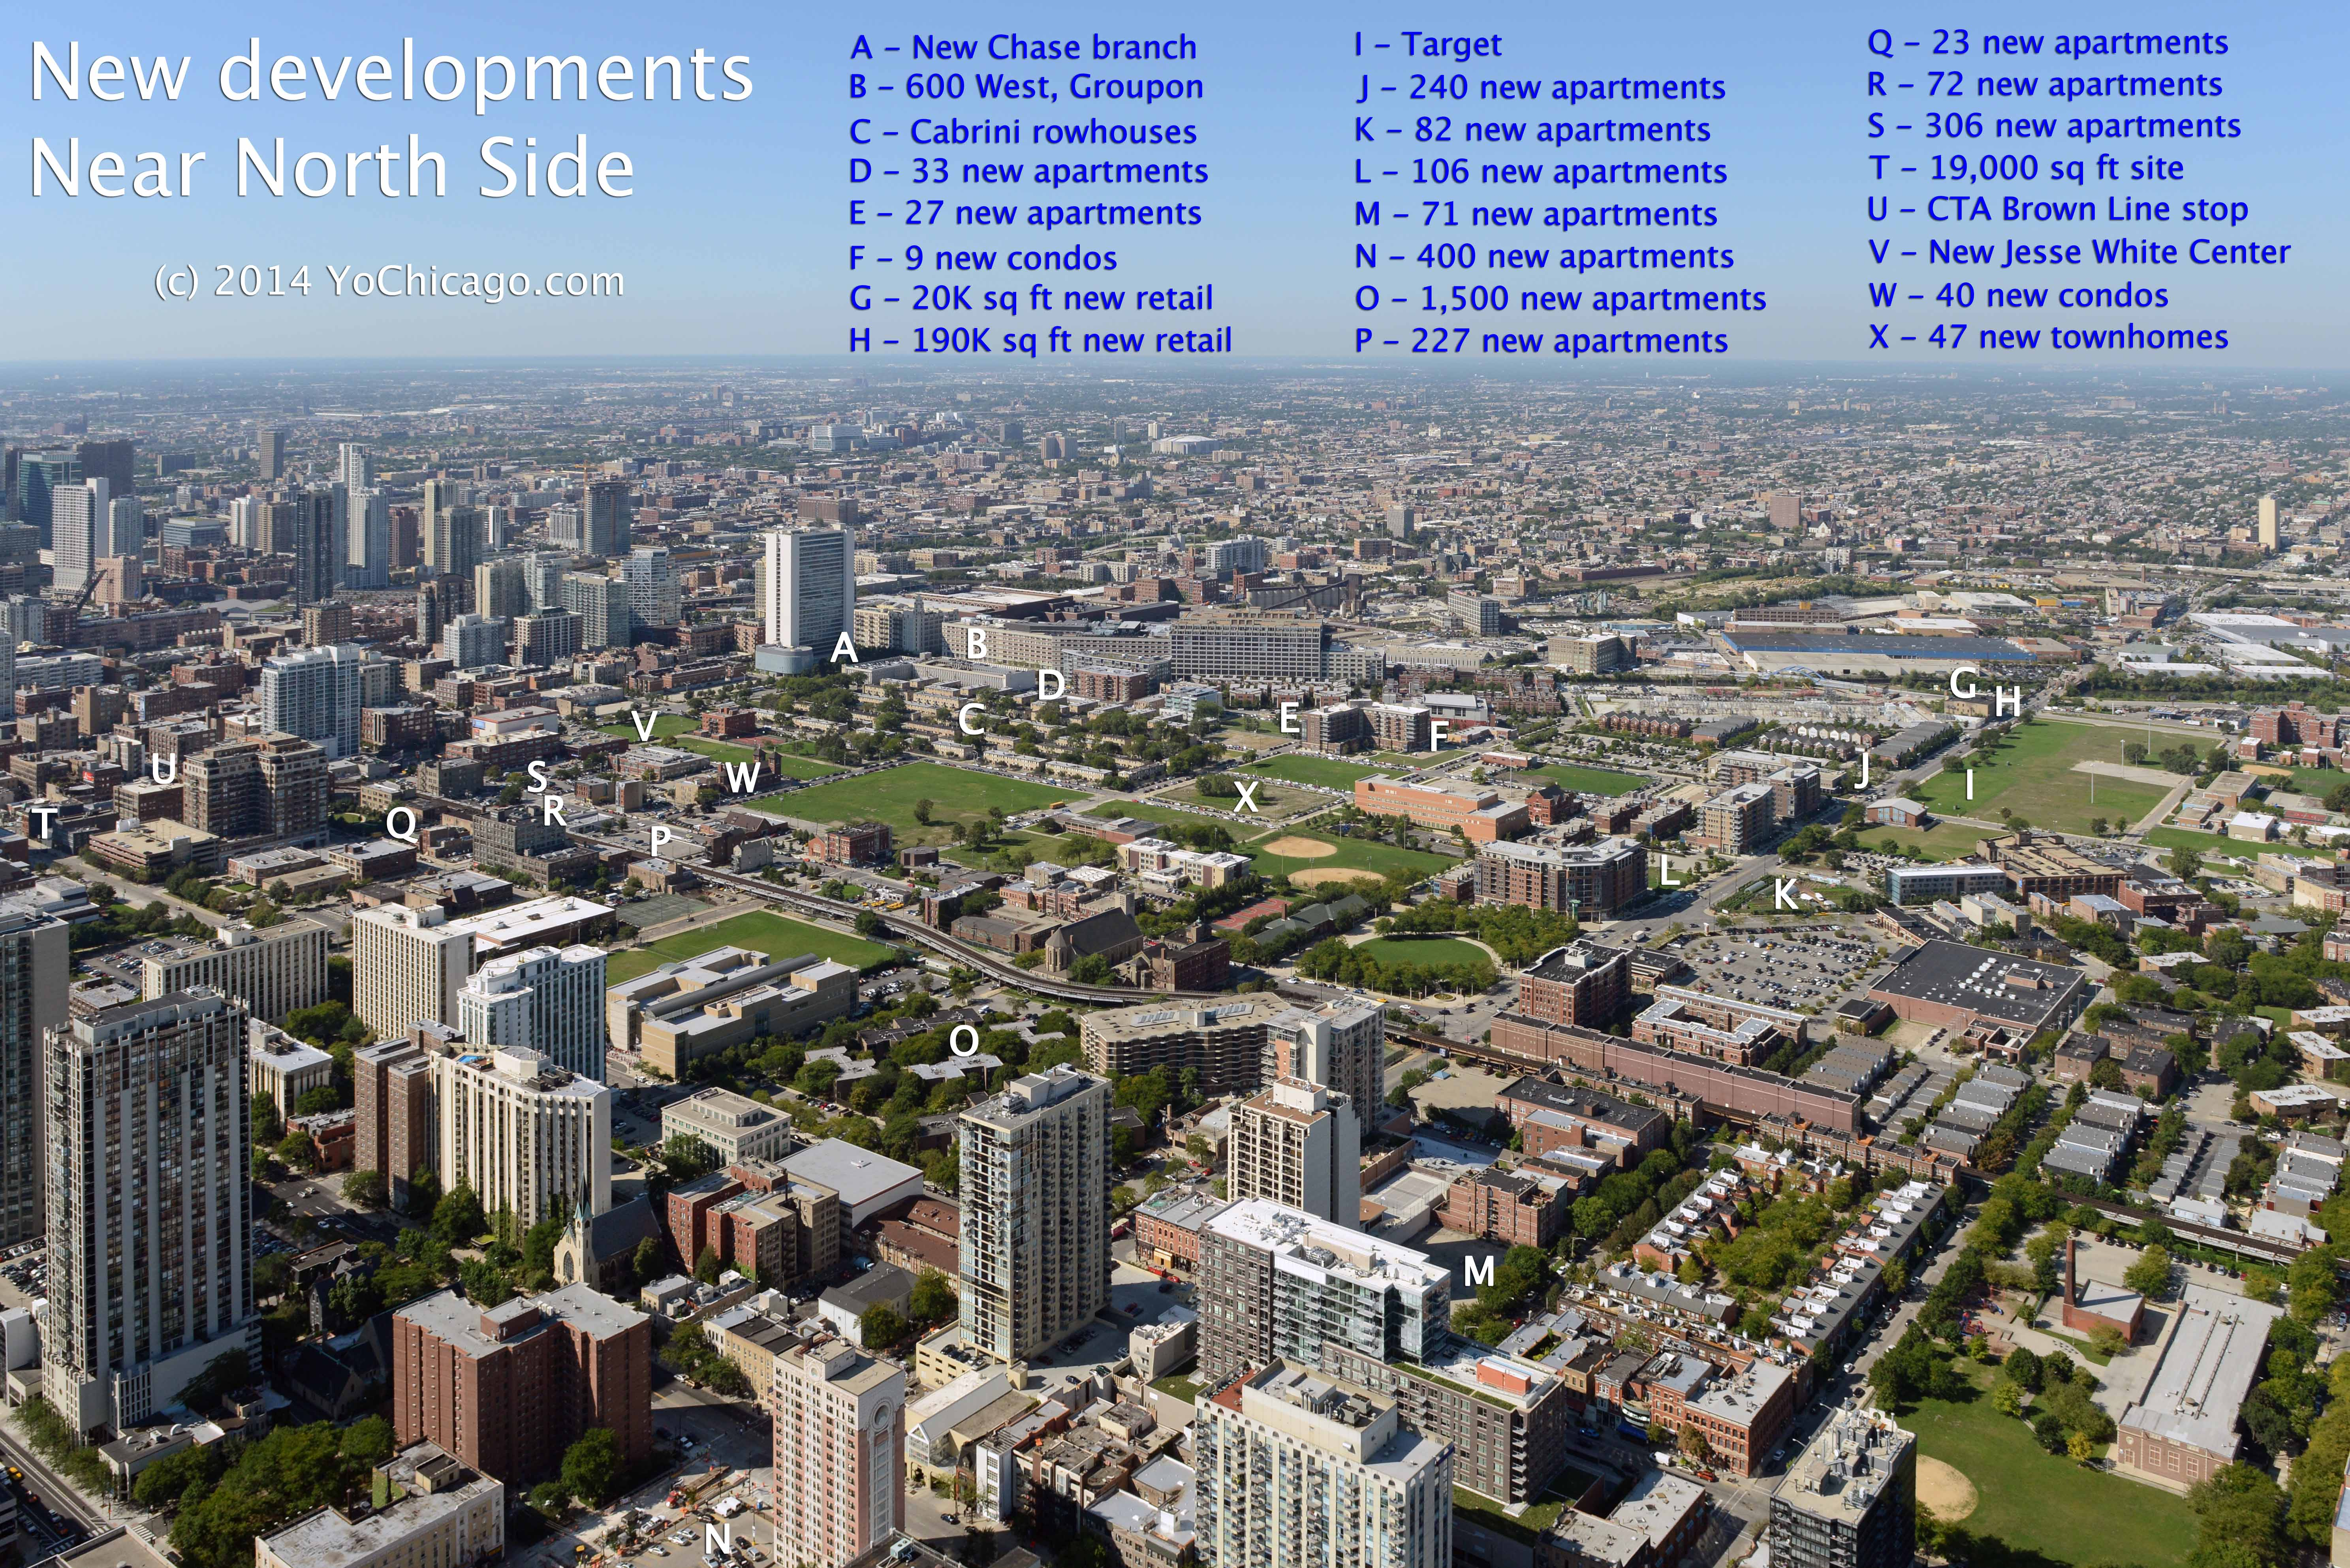 Chicago Near North Side Apartments An Aerial View Of New Near North Side Developments  Yochicago